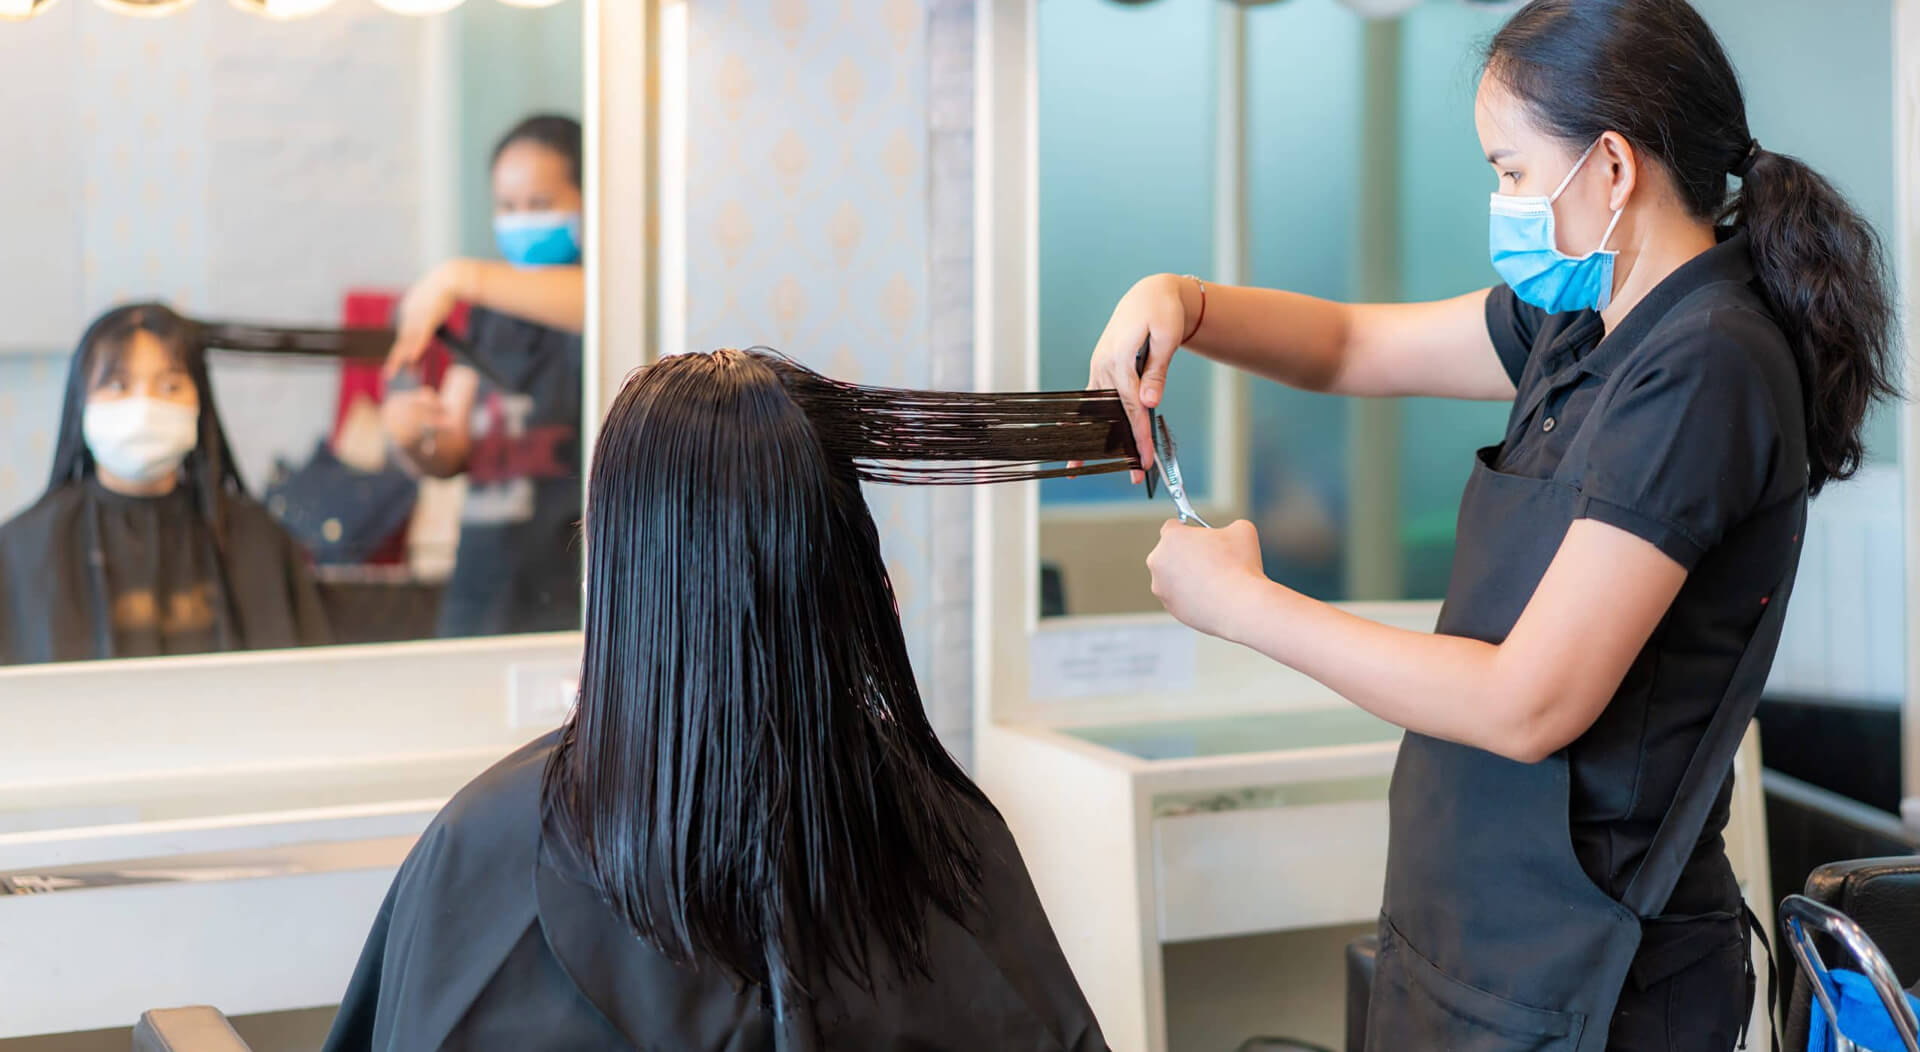 hairdresser trimming an asian woman's black hair with scissors in a mobile hair salon